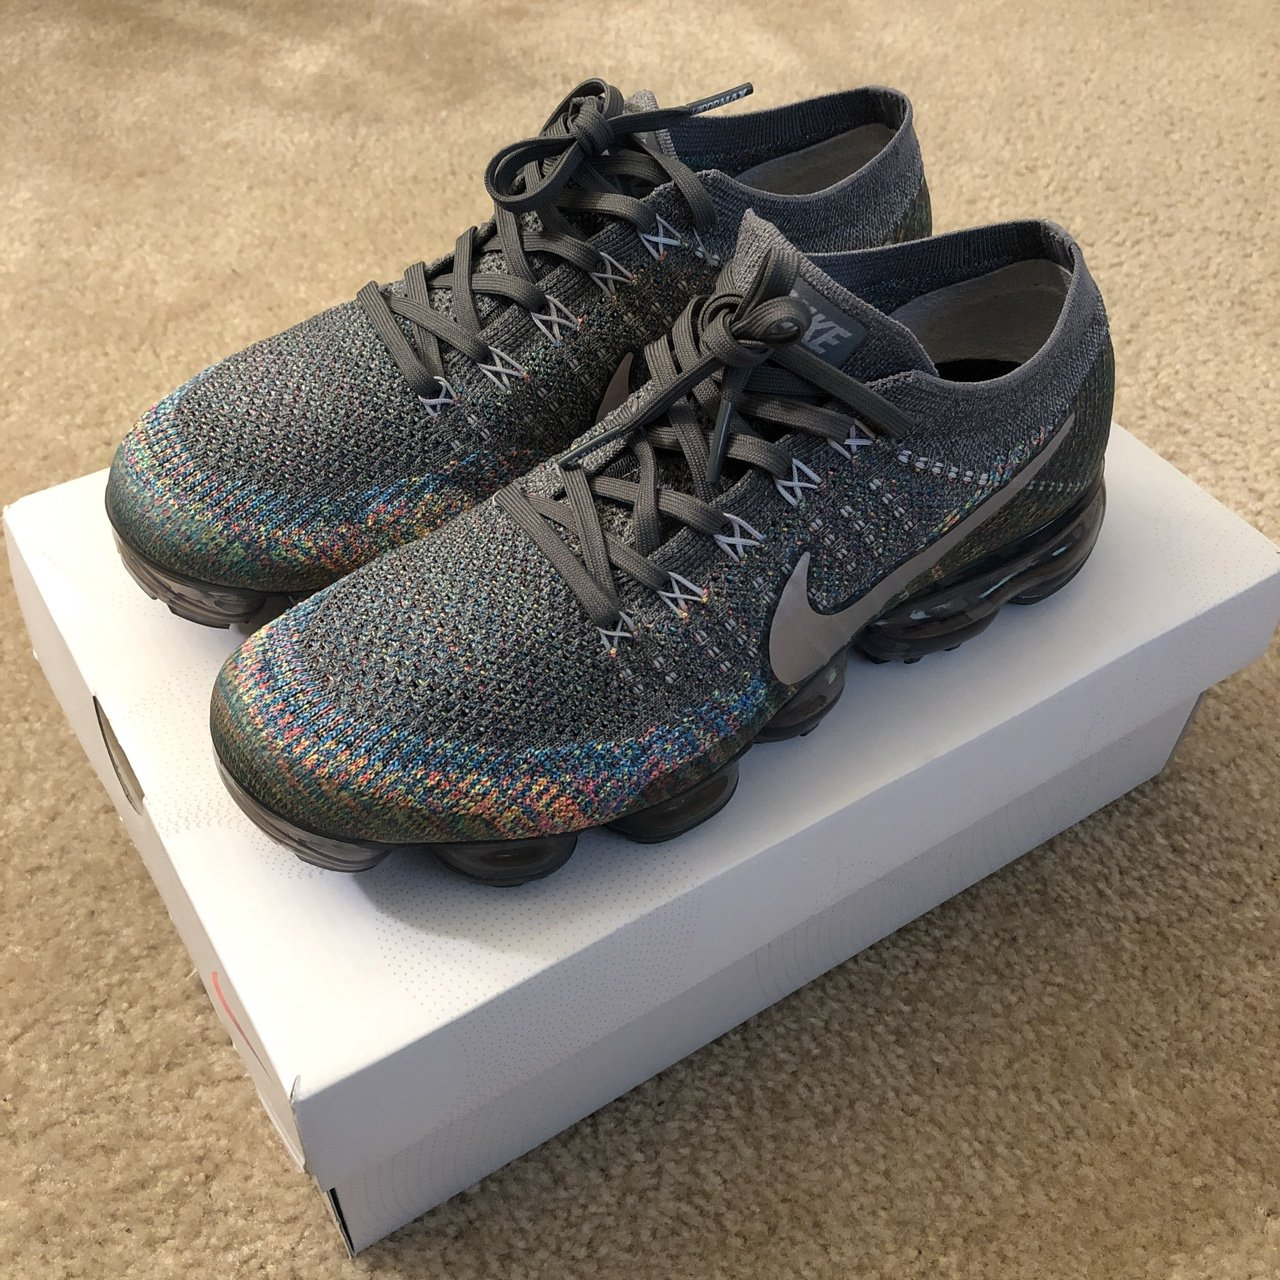 Air Vapormax Flyknit Grey Multi-Color 849558-019 100% only - Depop c9055959aa25